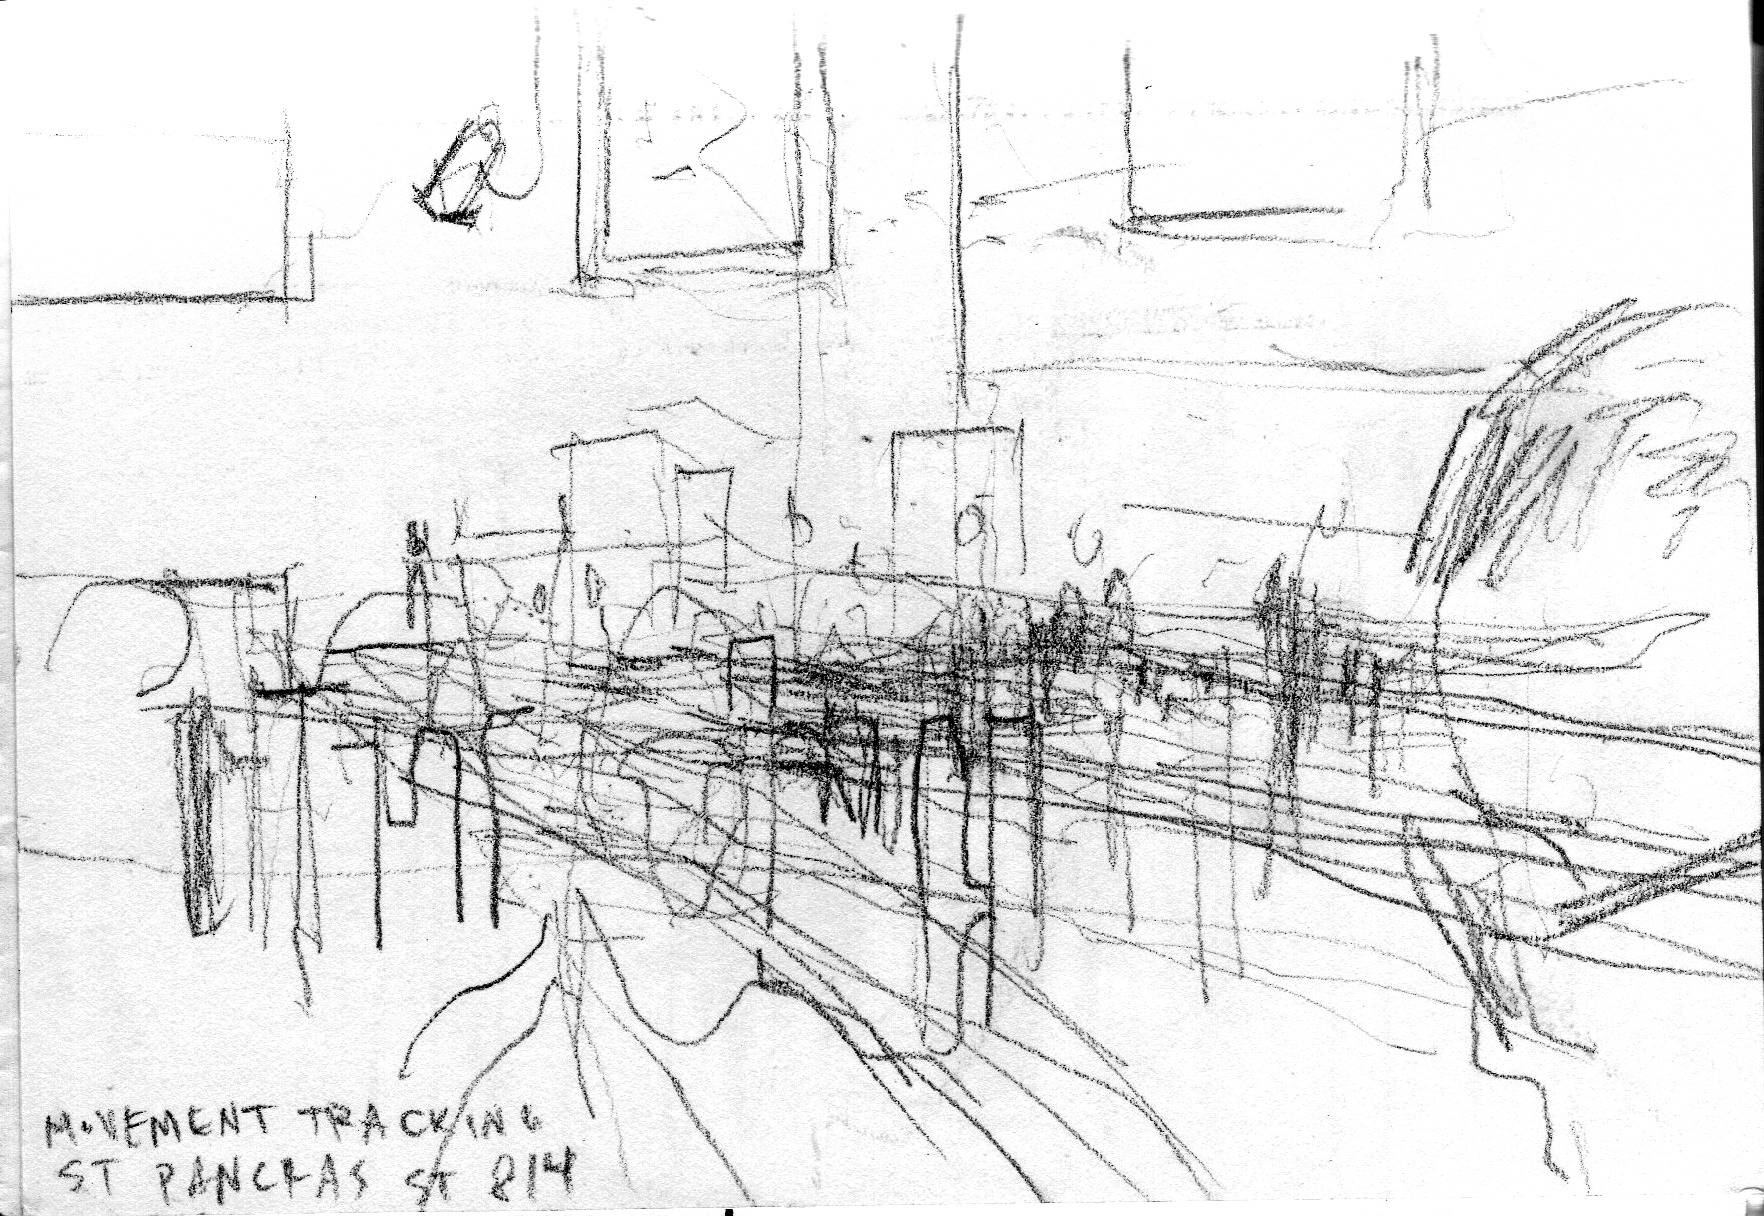 stpancras_people_tracking